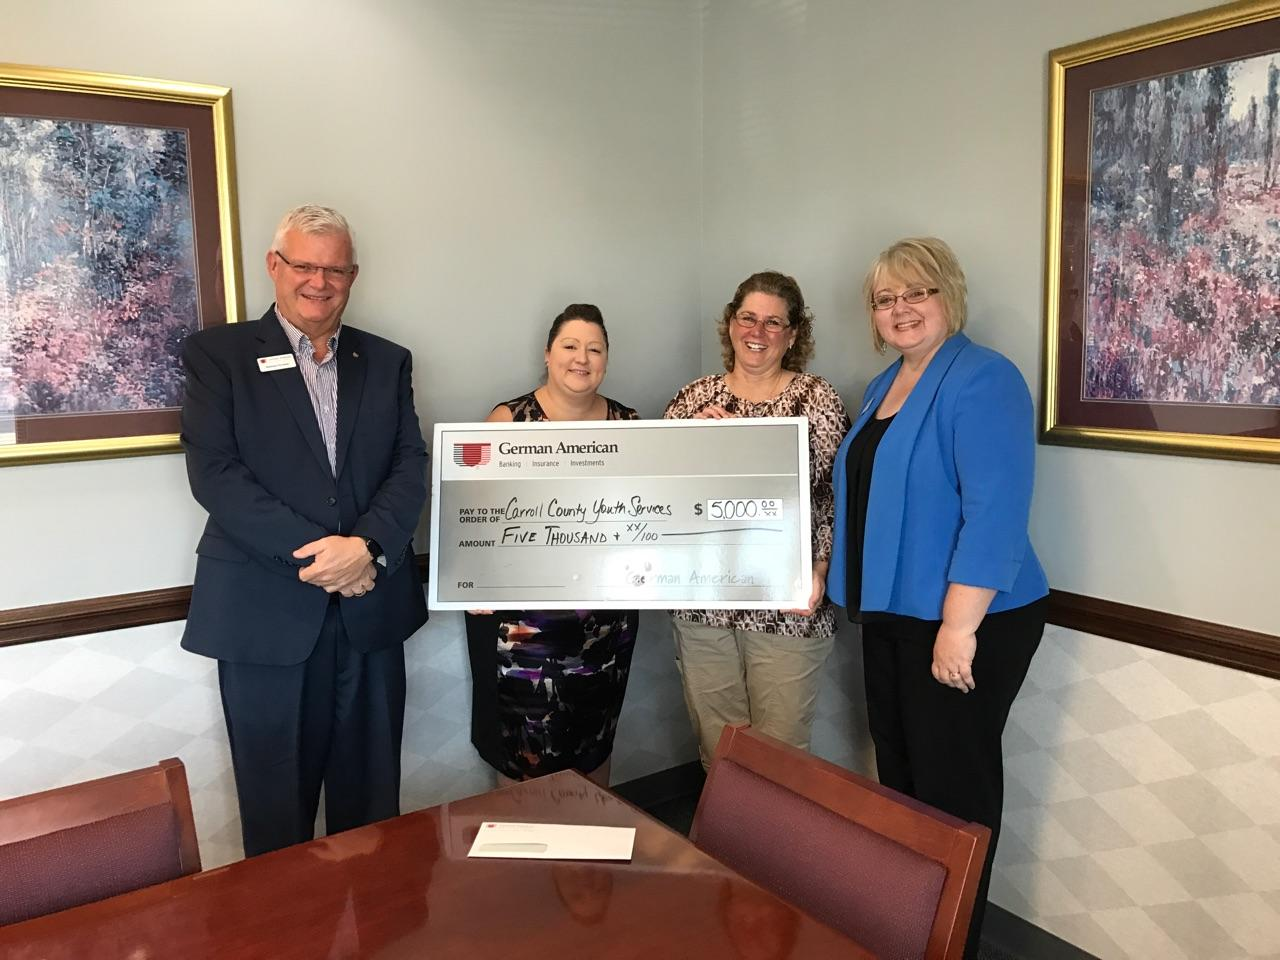 Tracey Reynolds (center-right) accepts a $5,000 donation from German American Bank on behalf of the Carroll County School District's Youth Services Center program.